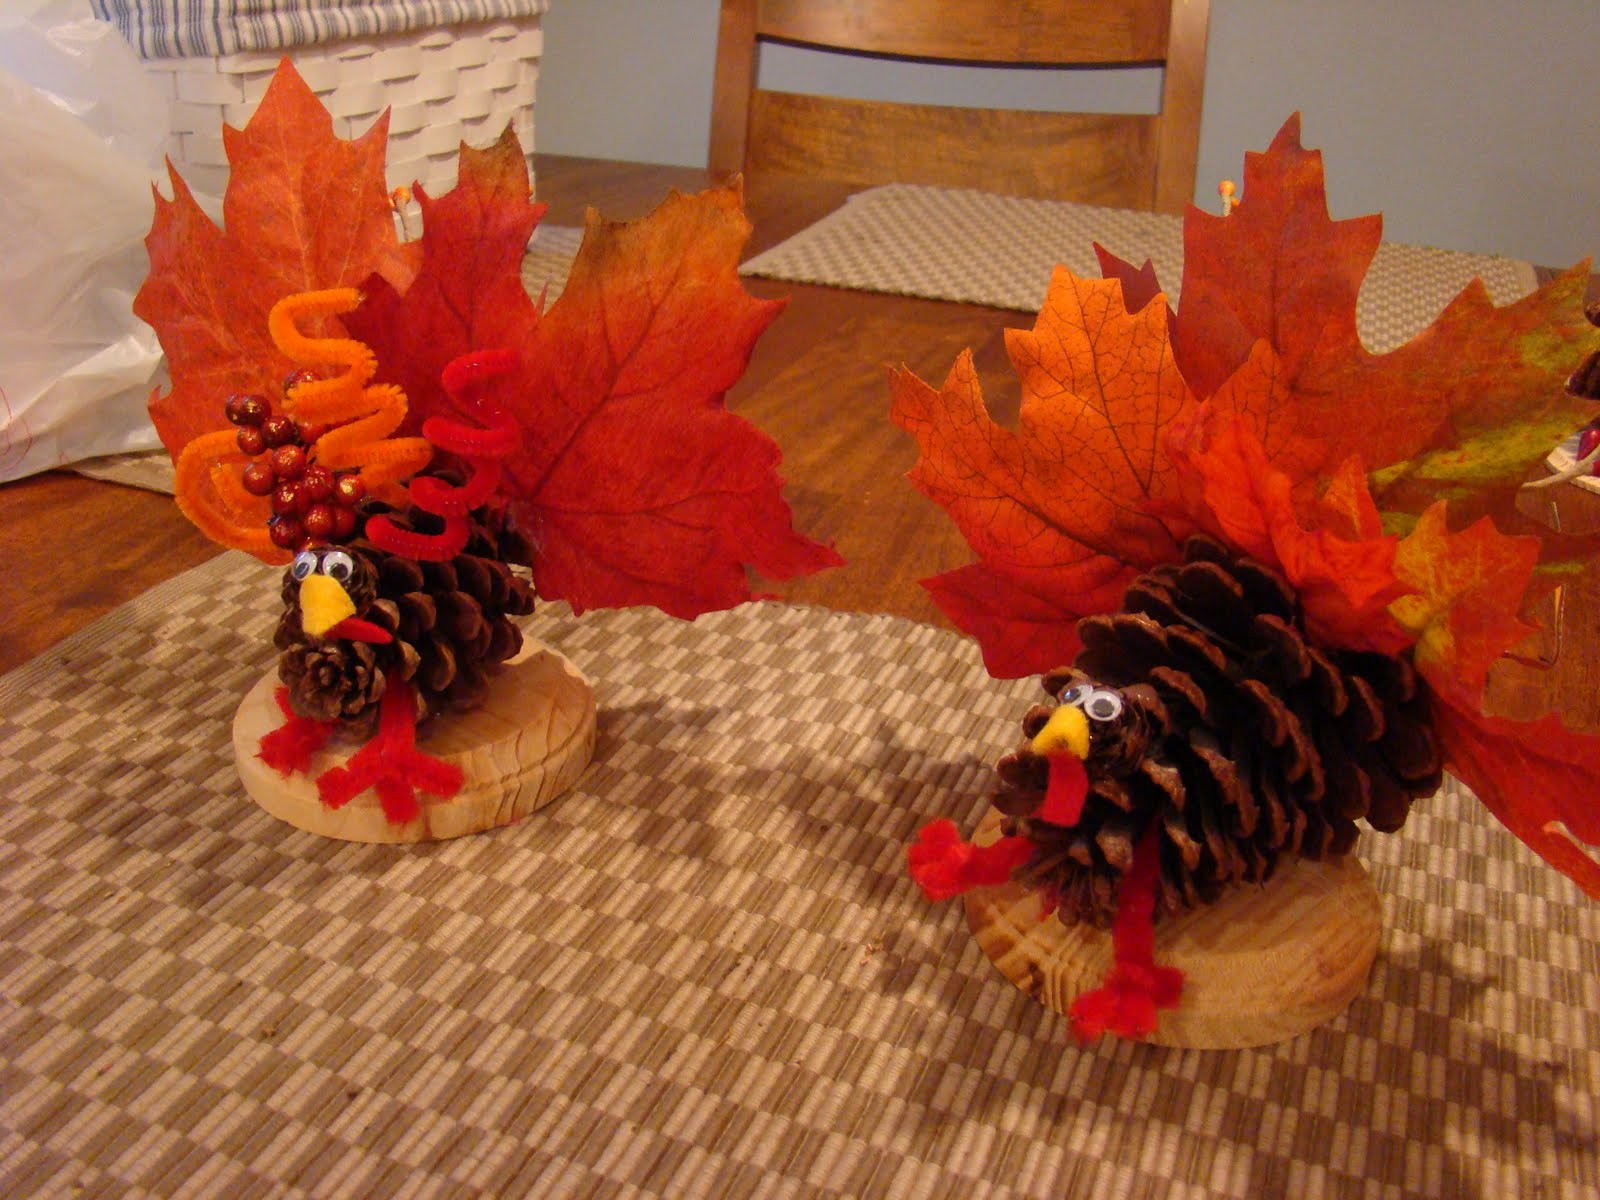 These Pine Cone Turkeys Are Just One Of The Adorable Thanksgiving Turkey Crafts You Can Make